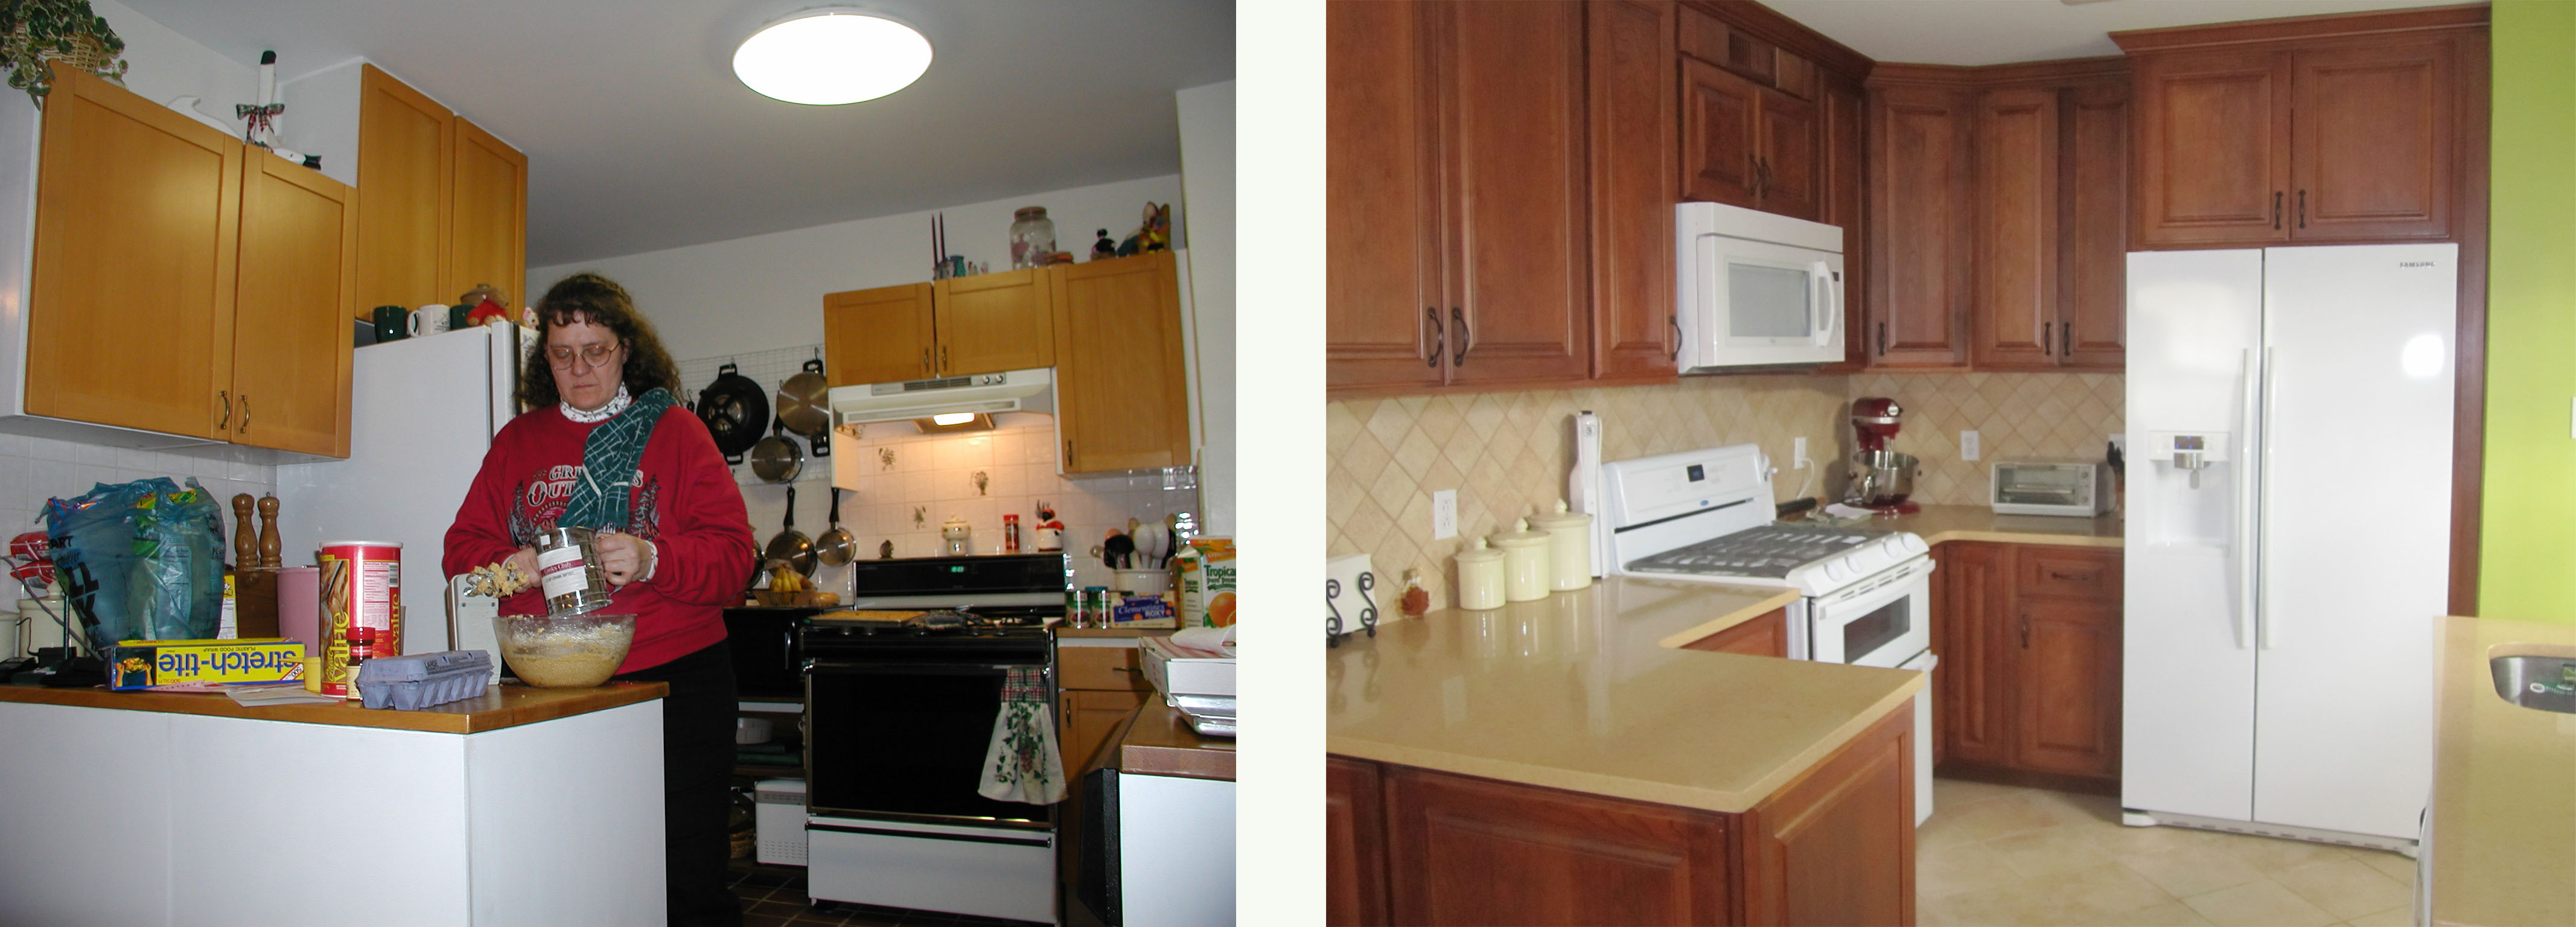 Kitchen Before And After : Overall view of both before and after kitchens.